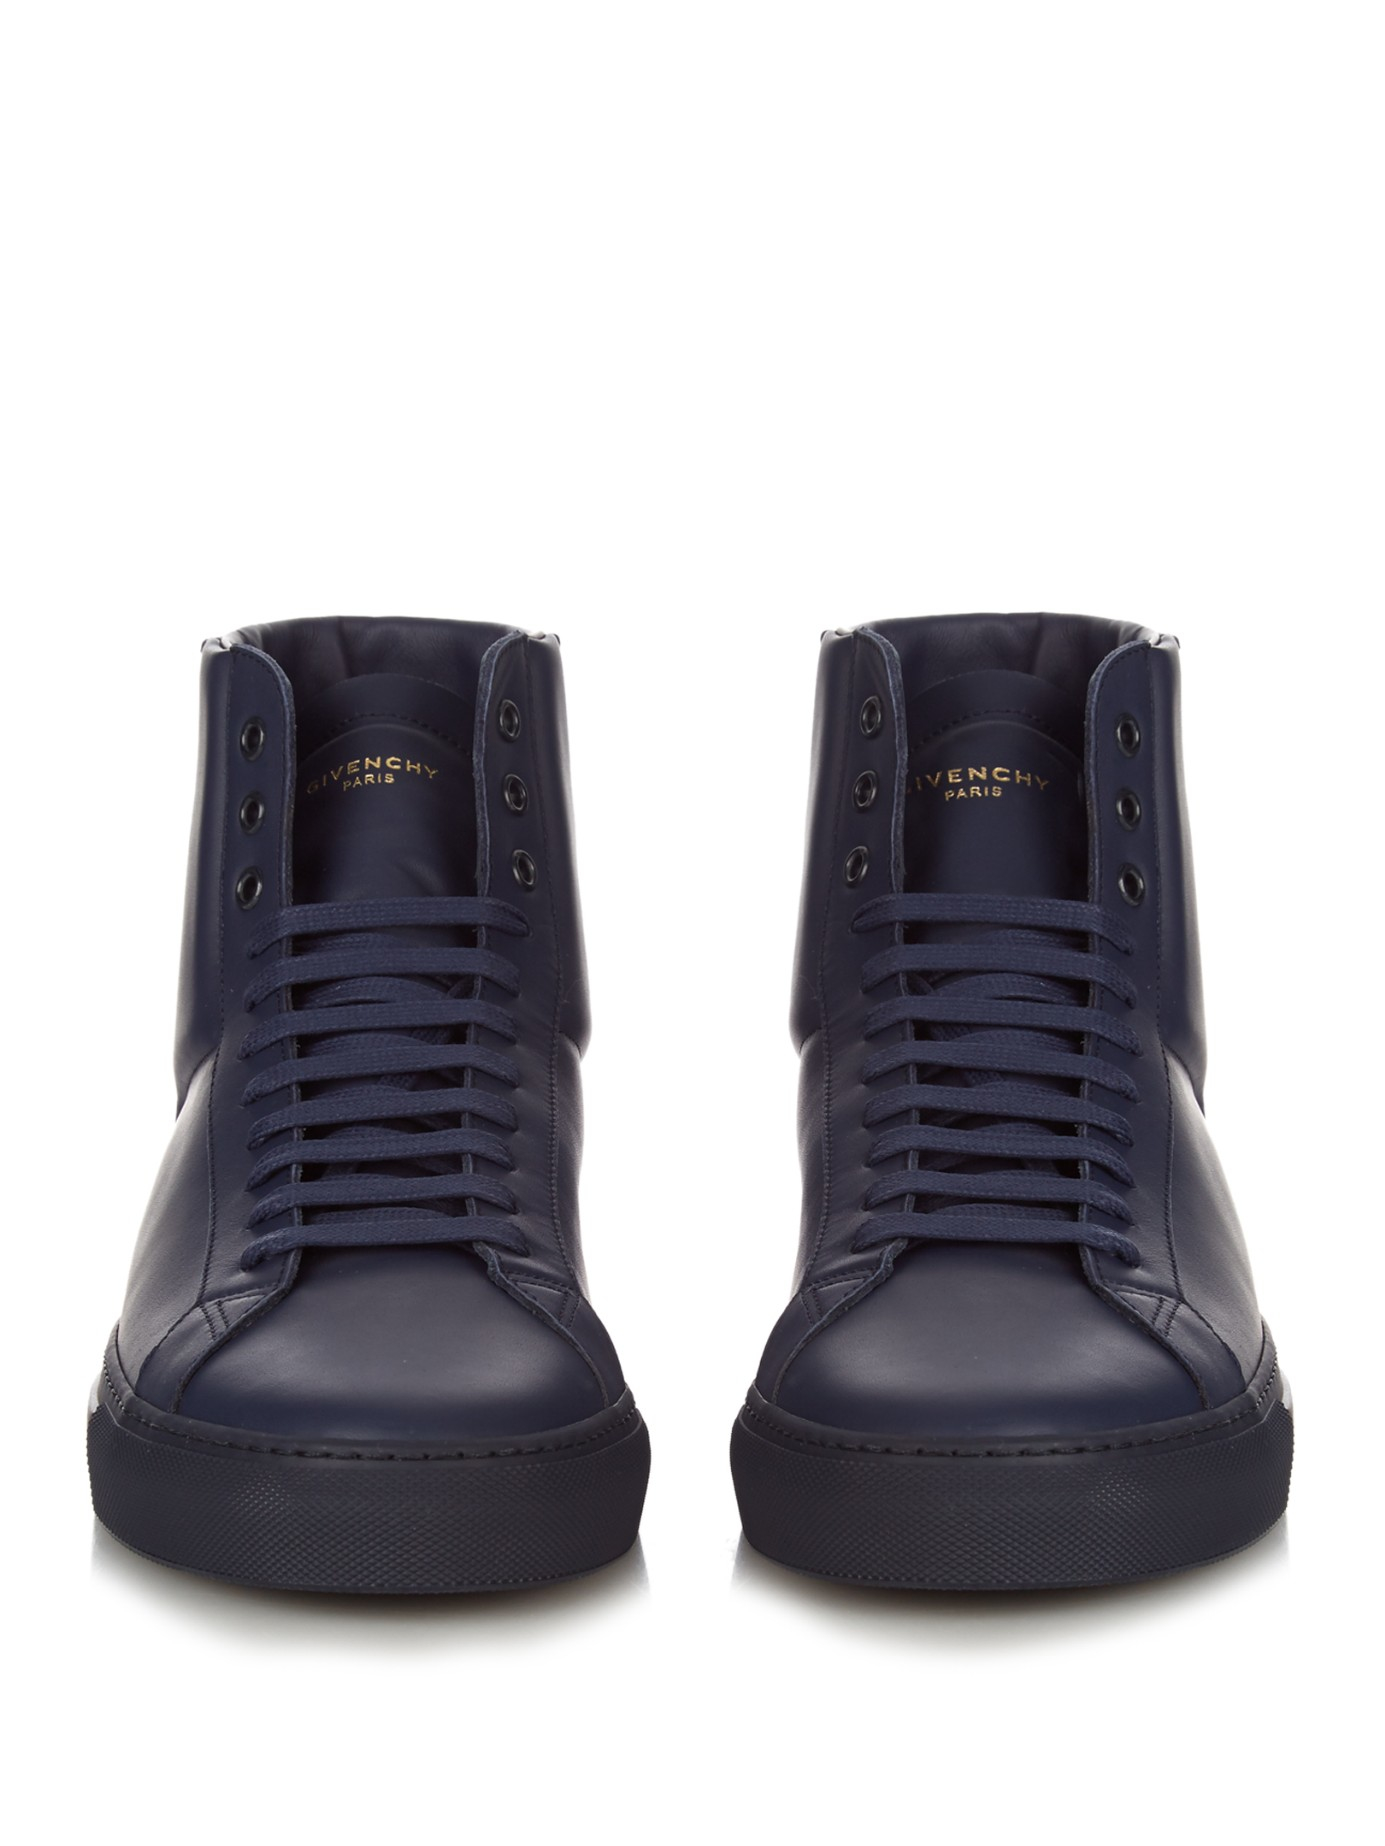 Givenchy Urban Knots High-top Leather Trainers in Navy (Black) for Men